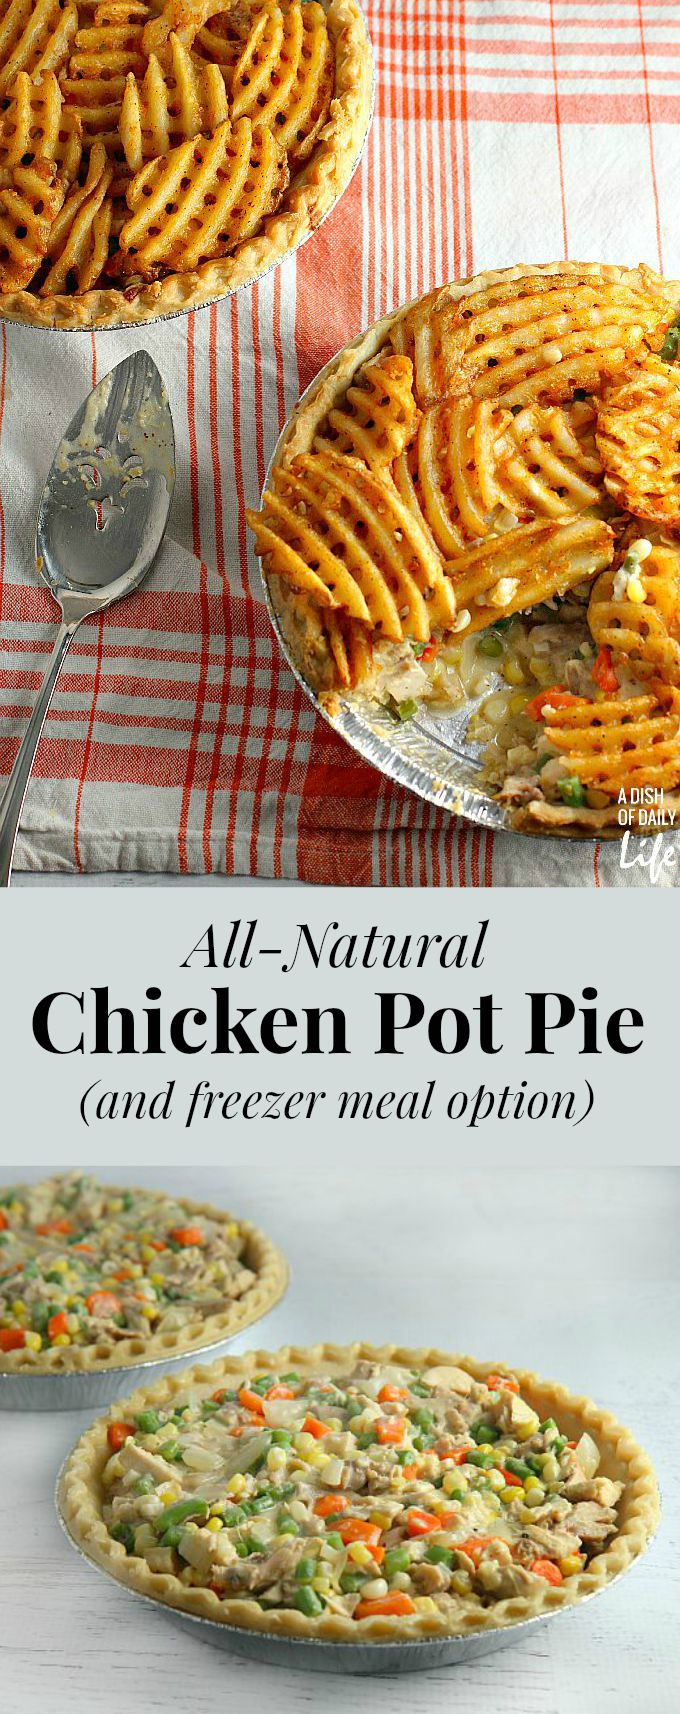 This All-Natural Chicken Pot Pie is sure to become a new family favorite! Plus this dinner recipe has a freezer meal option, perfect for busy parents!